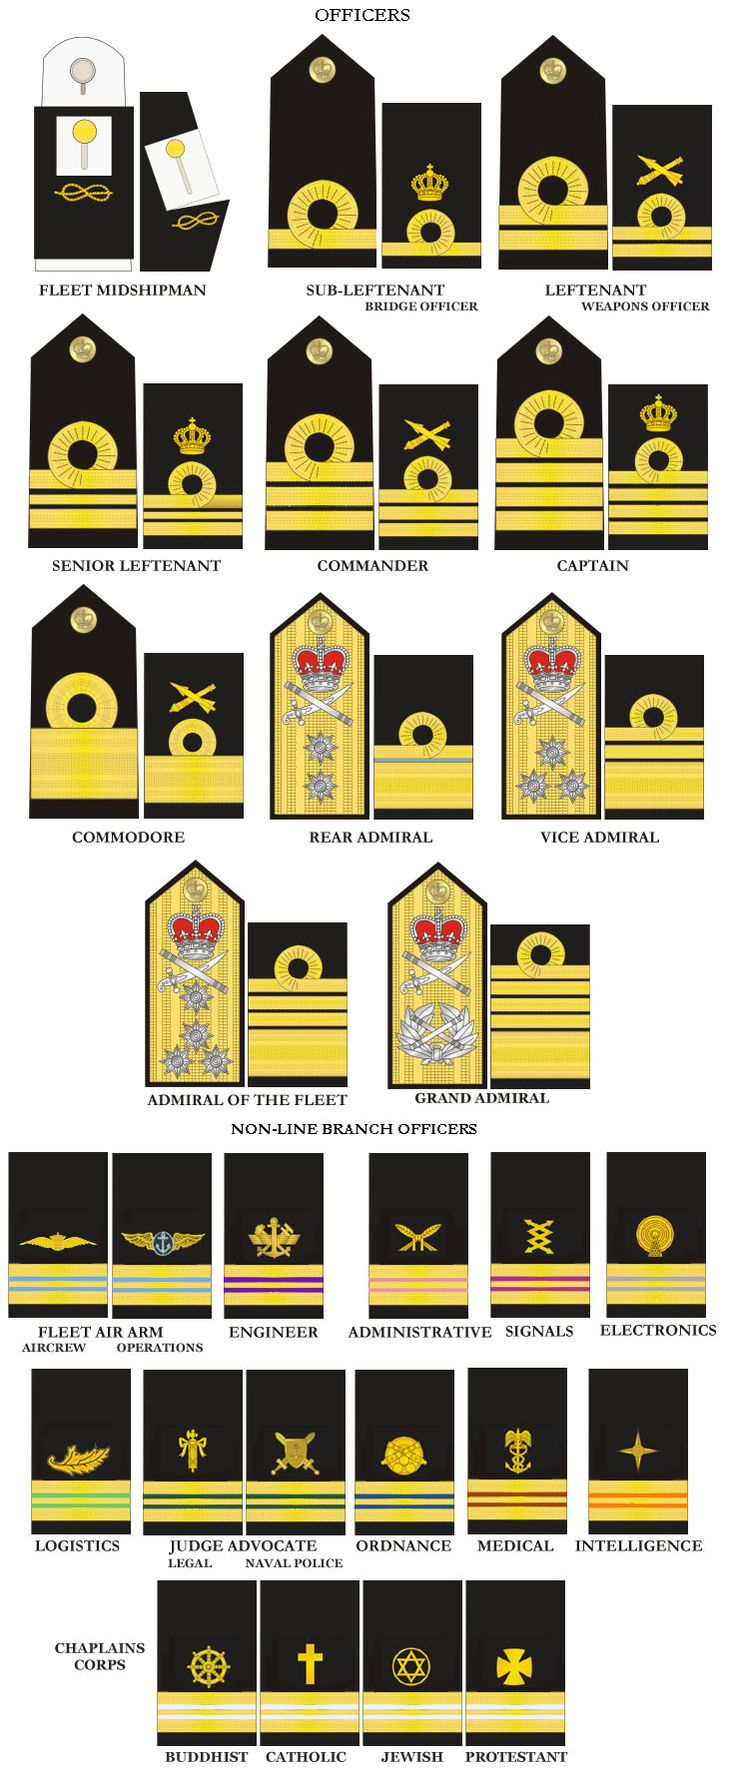 rank - DriverLayer Search Engine |Royal Navy Officer Ranks